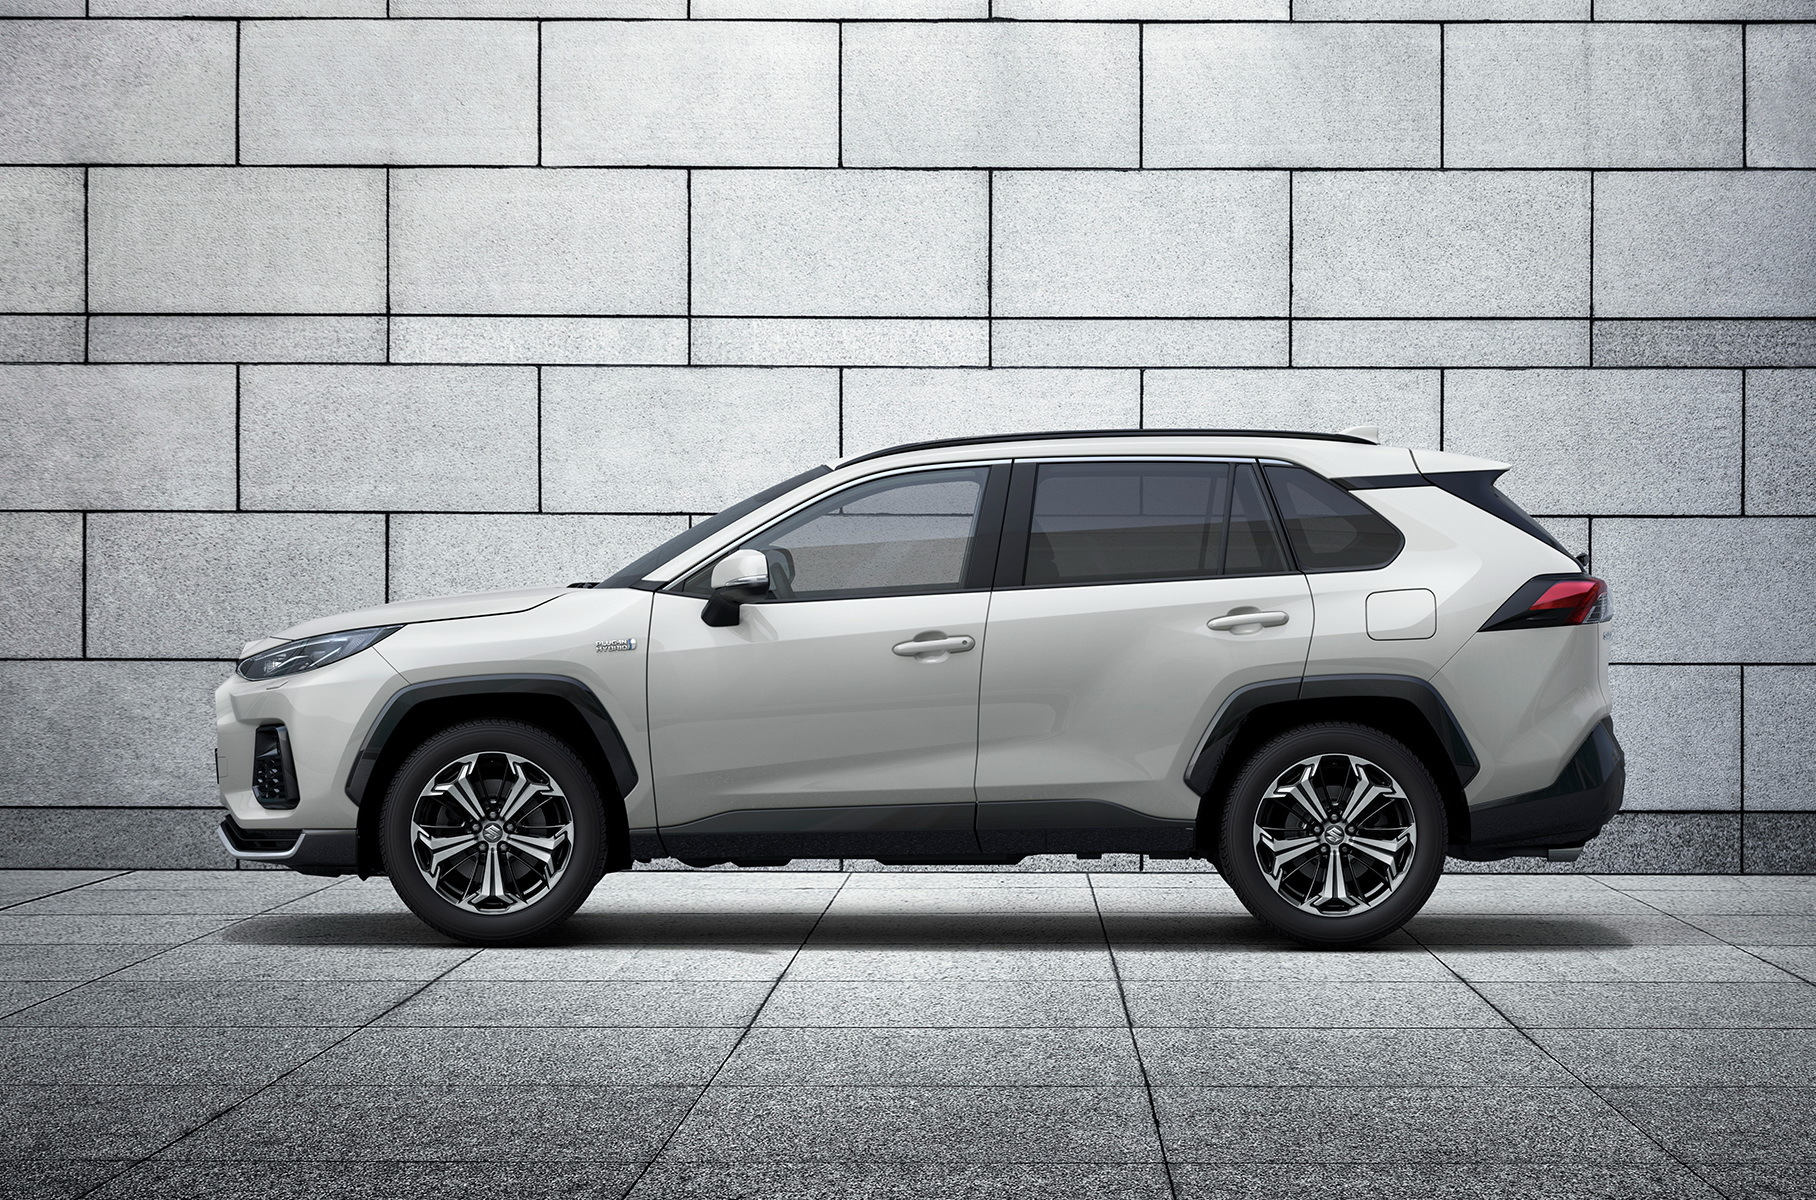 Suzuki has unveiled a compact SUV named Across that is actually just a redesigned Toyota RAV4 meant specifically for the European market.